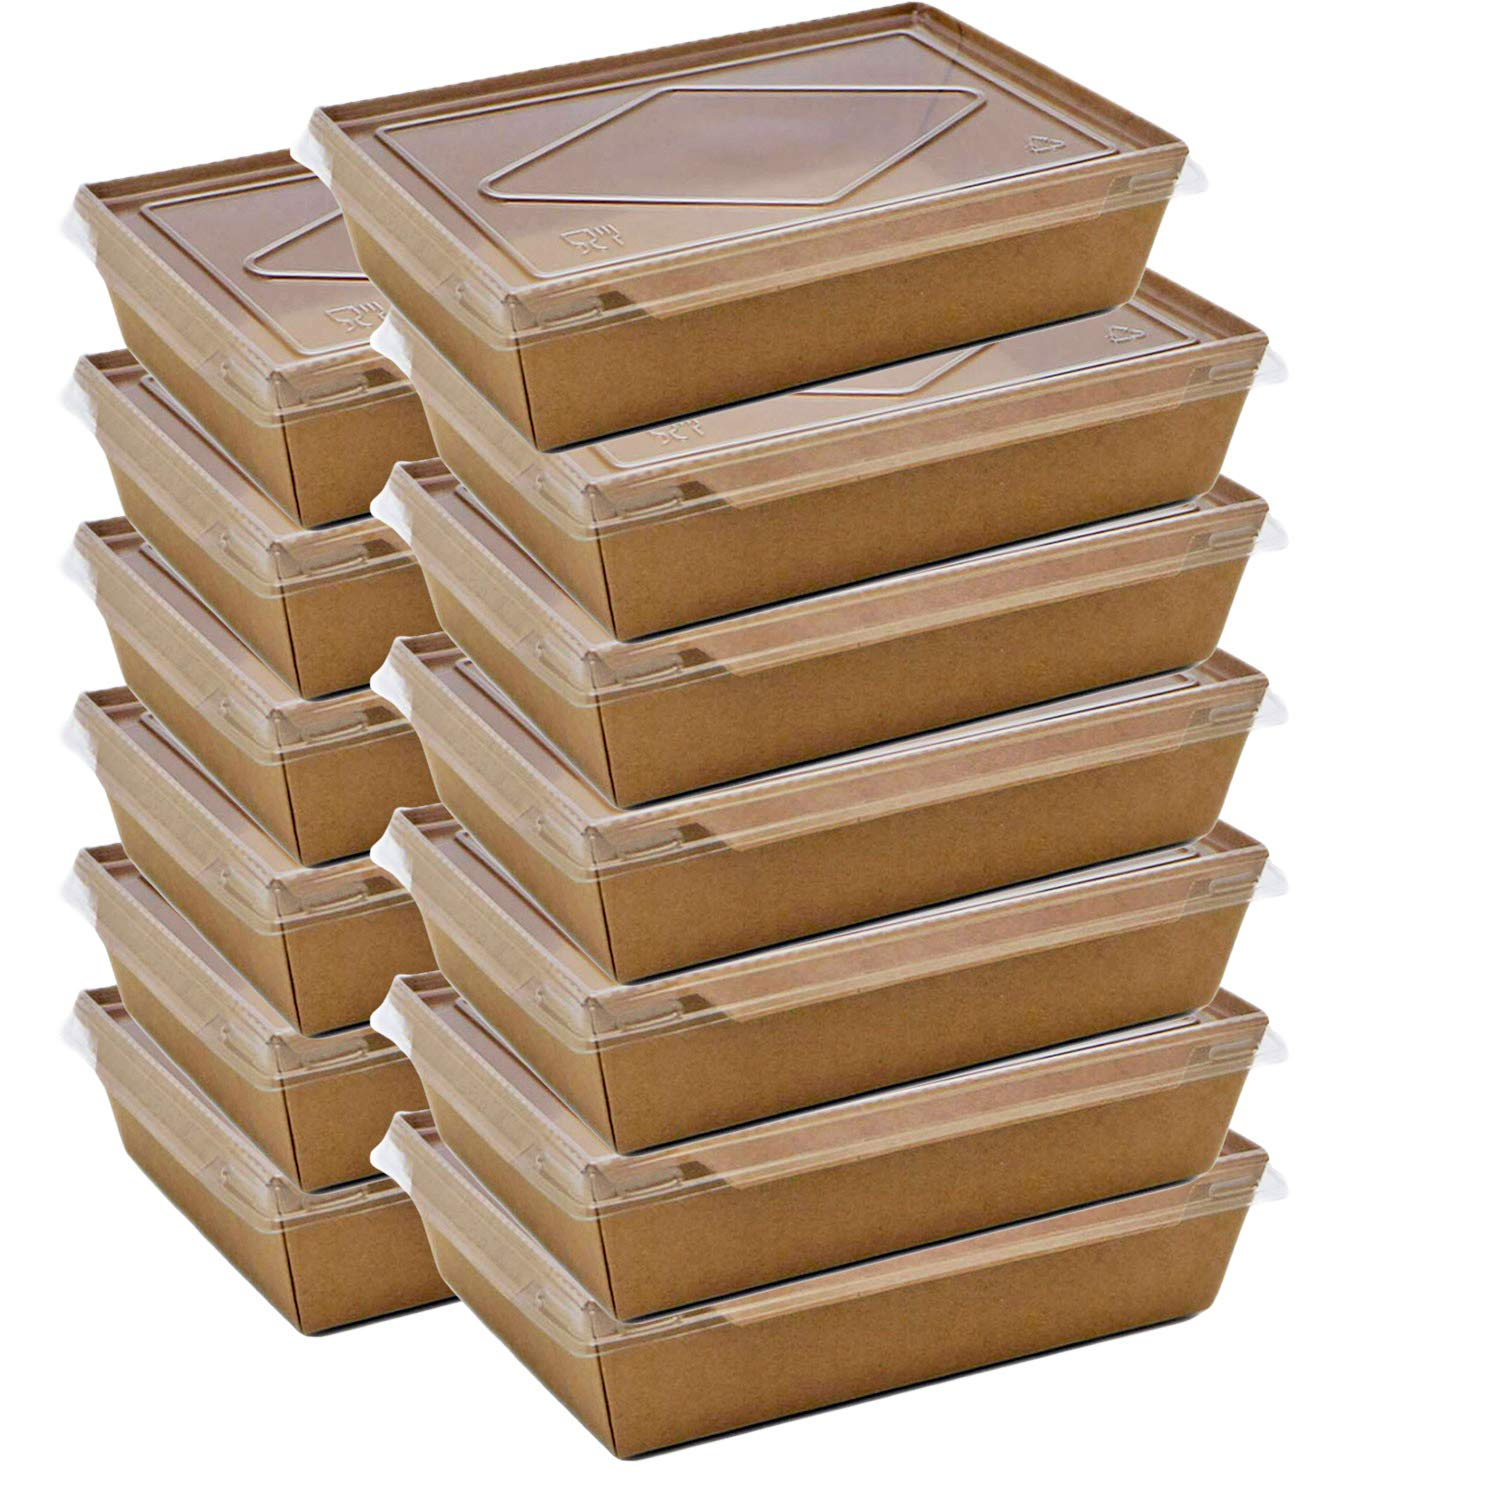 GETTING ON Rectangular Kraft Paper Disposable to go Boxes with Transparent Cover 76 Oz (7.6X 5.5 x 2.5 inche) s(50 Packs) 2100gram Recyclable take Out Lunch Box Food Container with Transparent Window